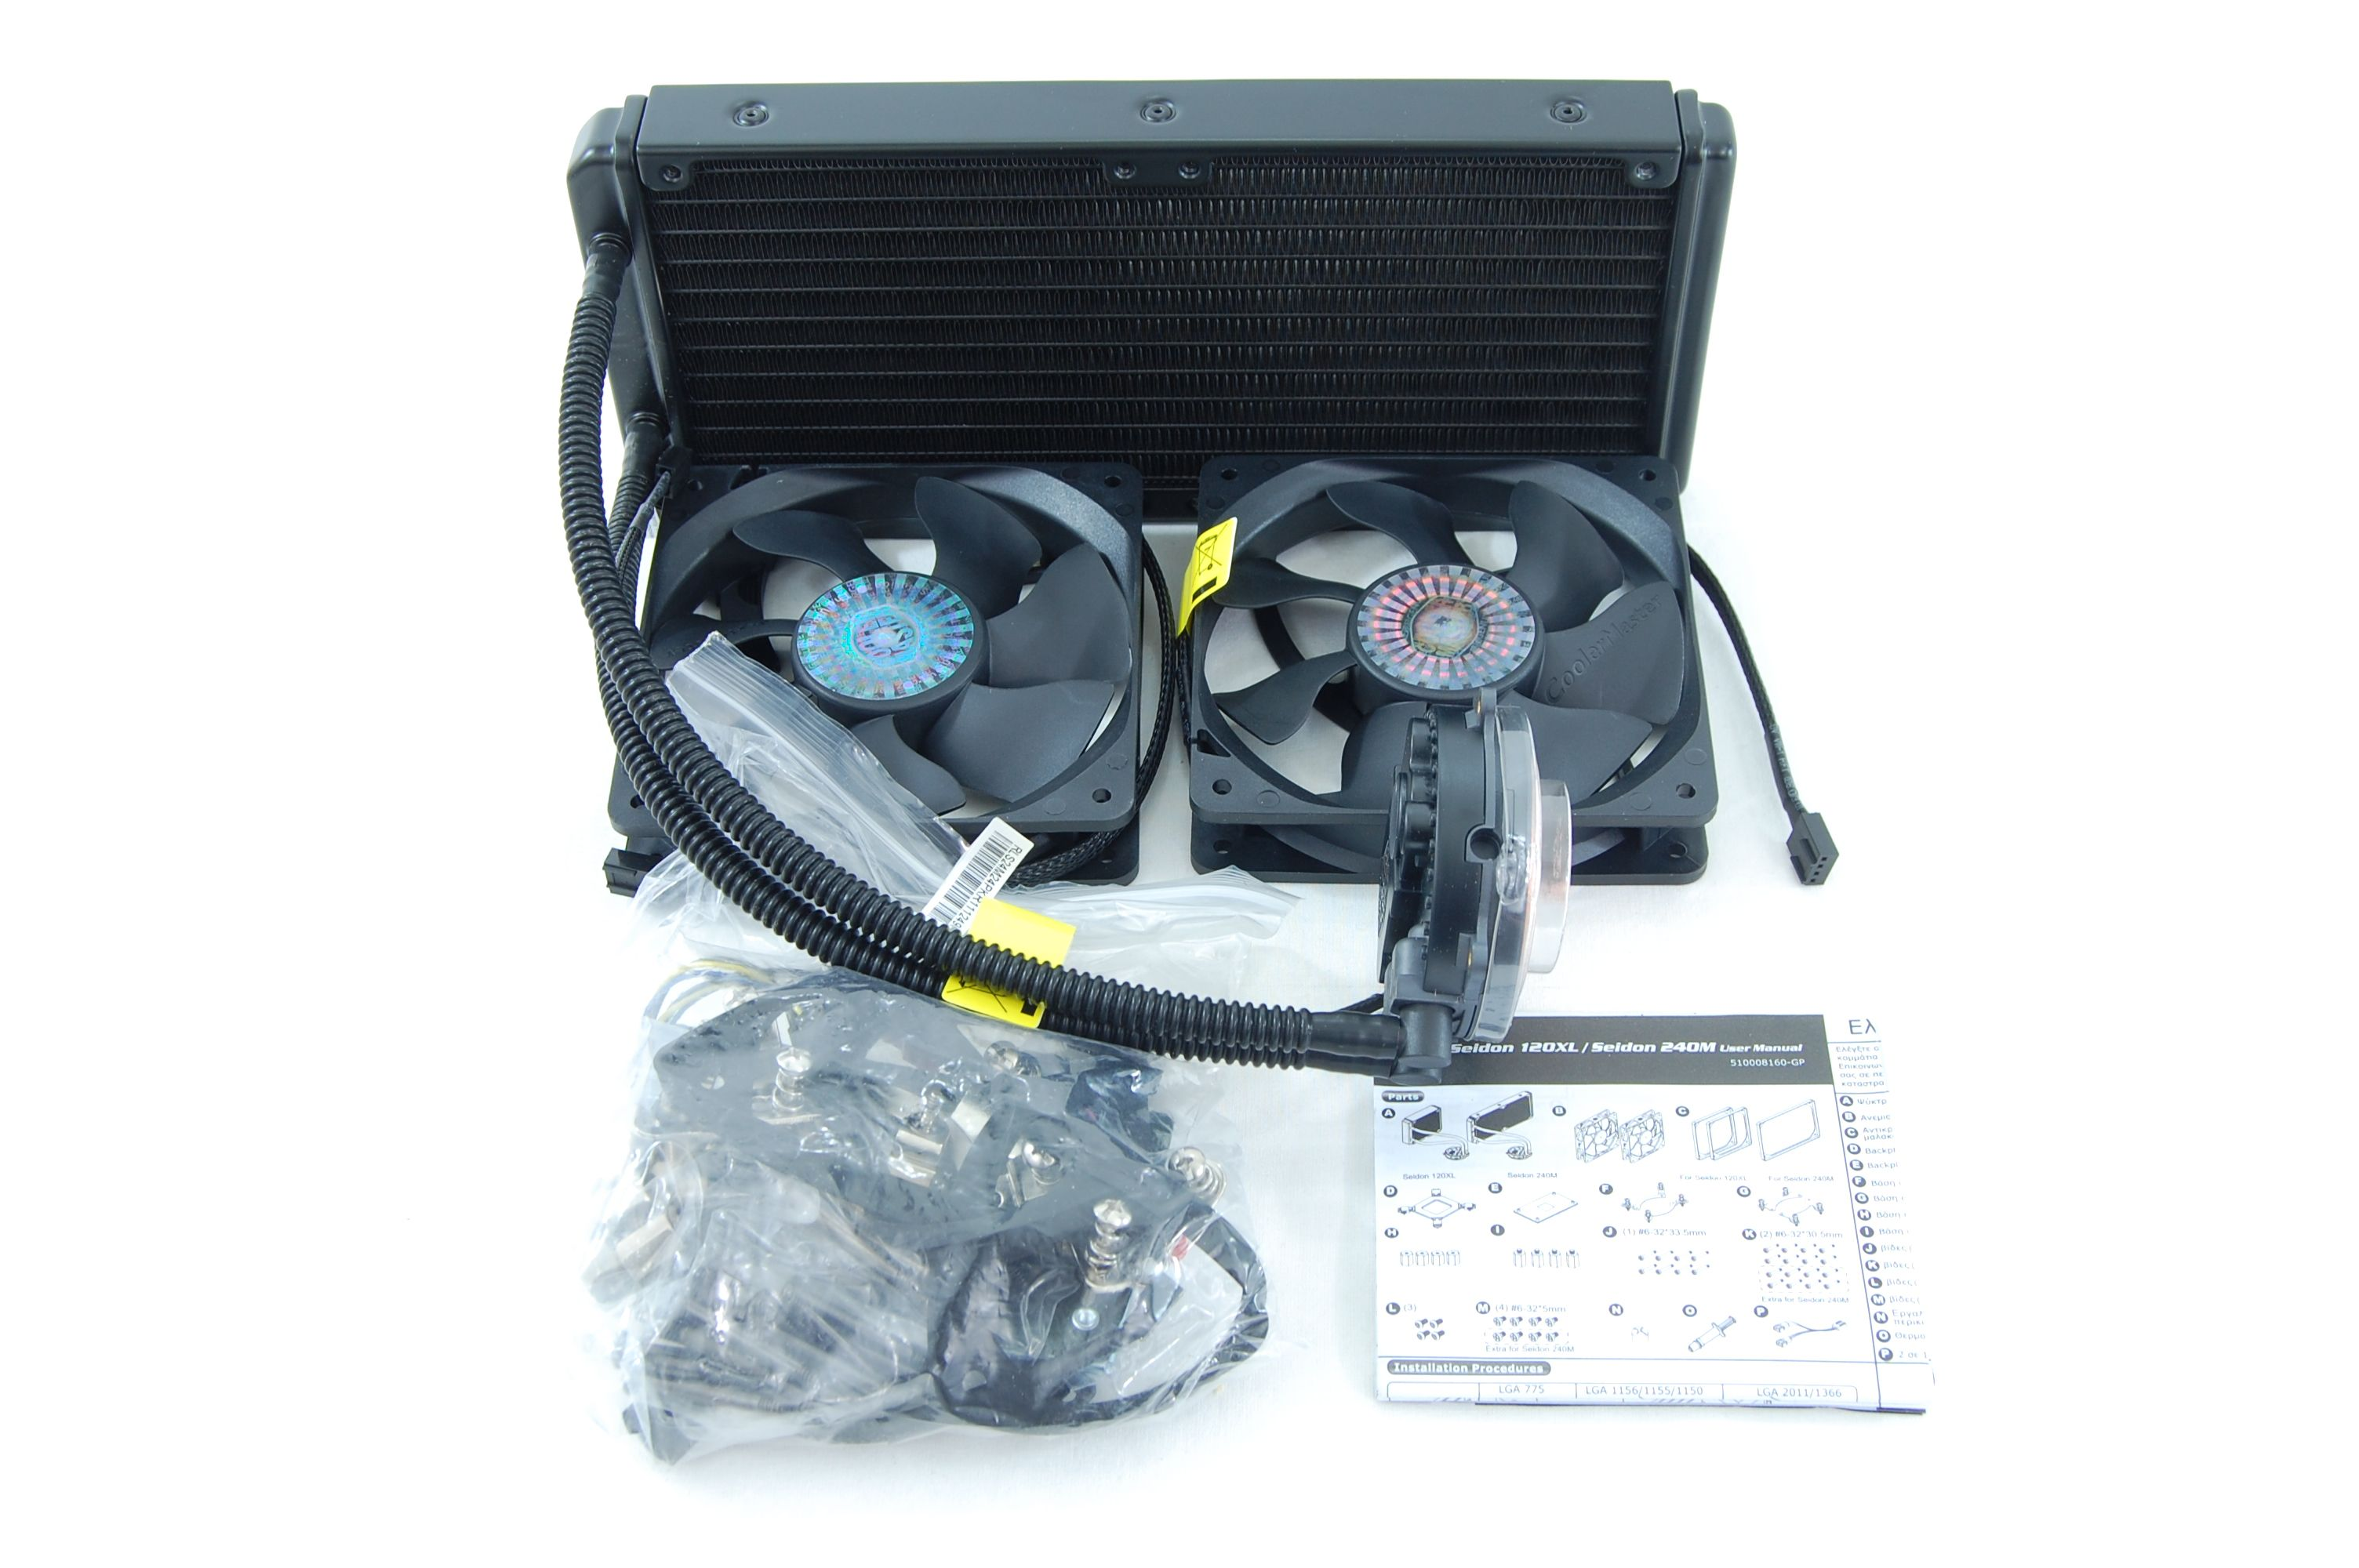 CoolerMaster Seidon 240M All-in-One Liquid CPU Cooler Review - Included Accessories